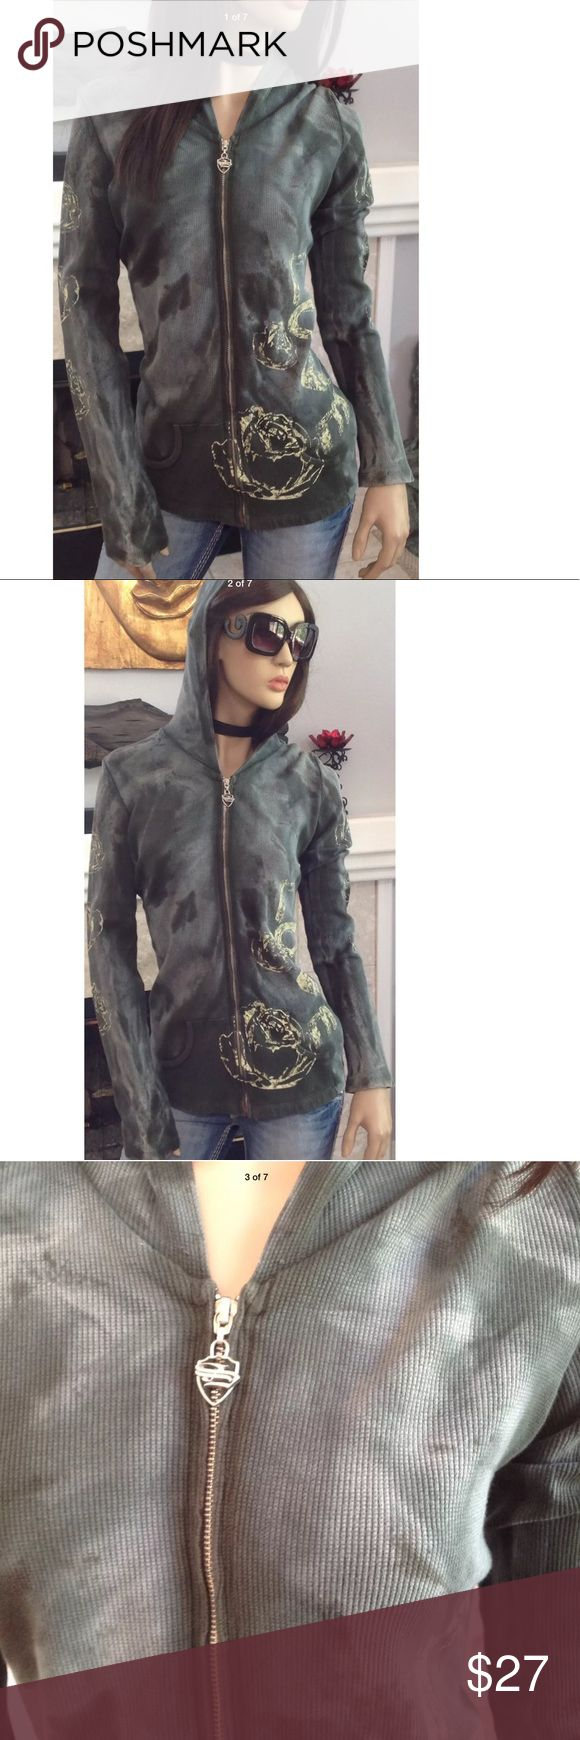 SLEDGE ZIP UP JACKET WOMEN' SWEATER  SIZE L (T6) SLEDGE ZIPPED UP WOMEN' ACTIVE SWEATER JACKET WITH HOODIE VERY NICE  SIZE L VERY GOOD CONDITION WITH NO TEARS, STAINS OR RIPS COMES FROM A SMOKE FREE HOME.  (T6) Sledge Jackets & Coats